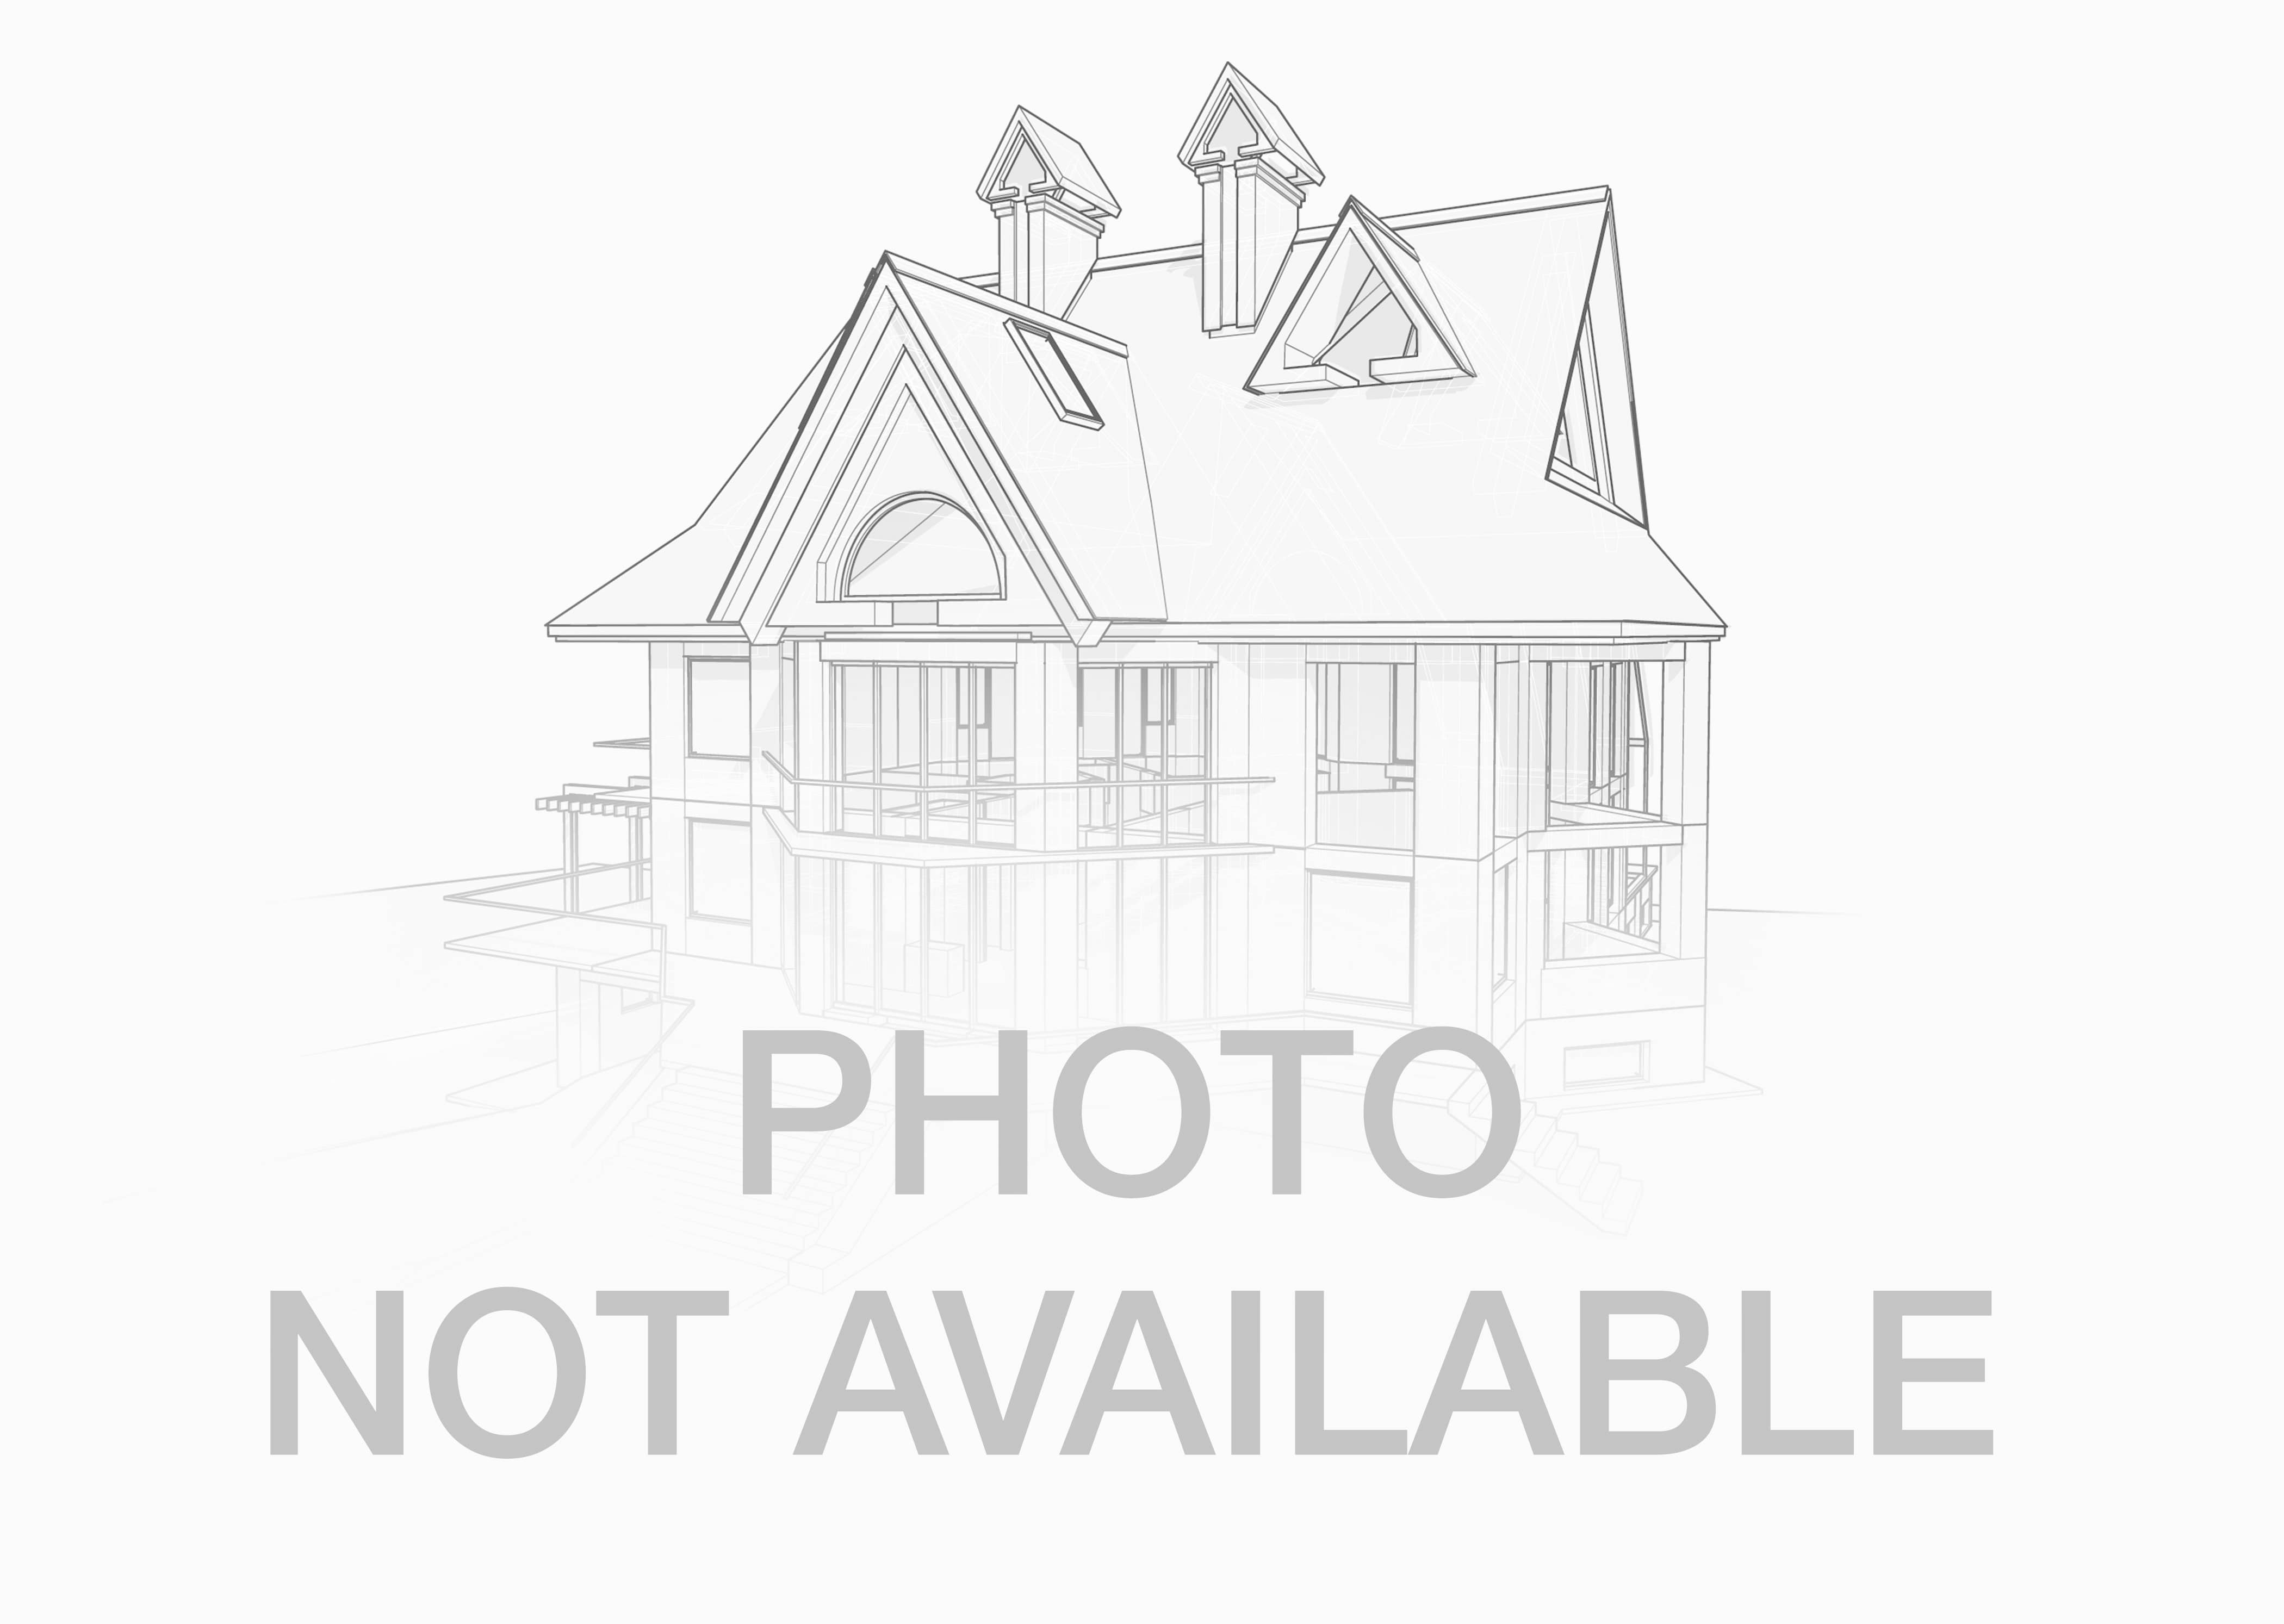 10897 153rd Street, Pike Creek Township, MN 56345- Primary Photographpike creek township